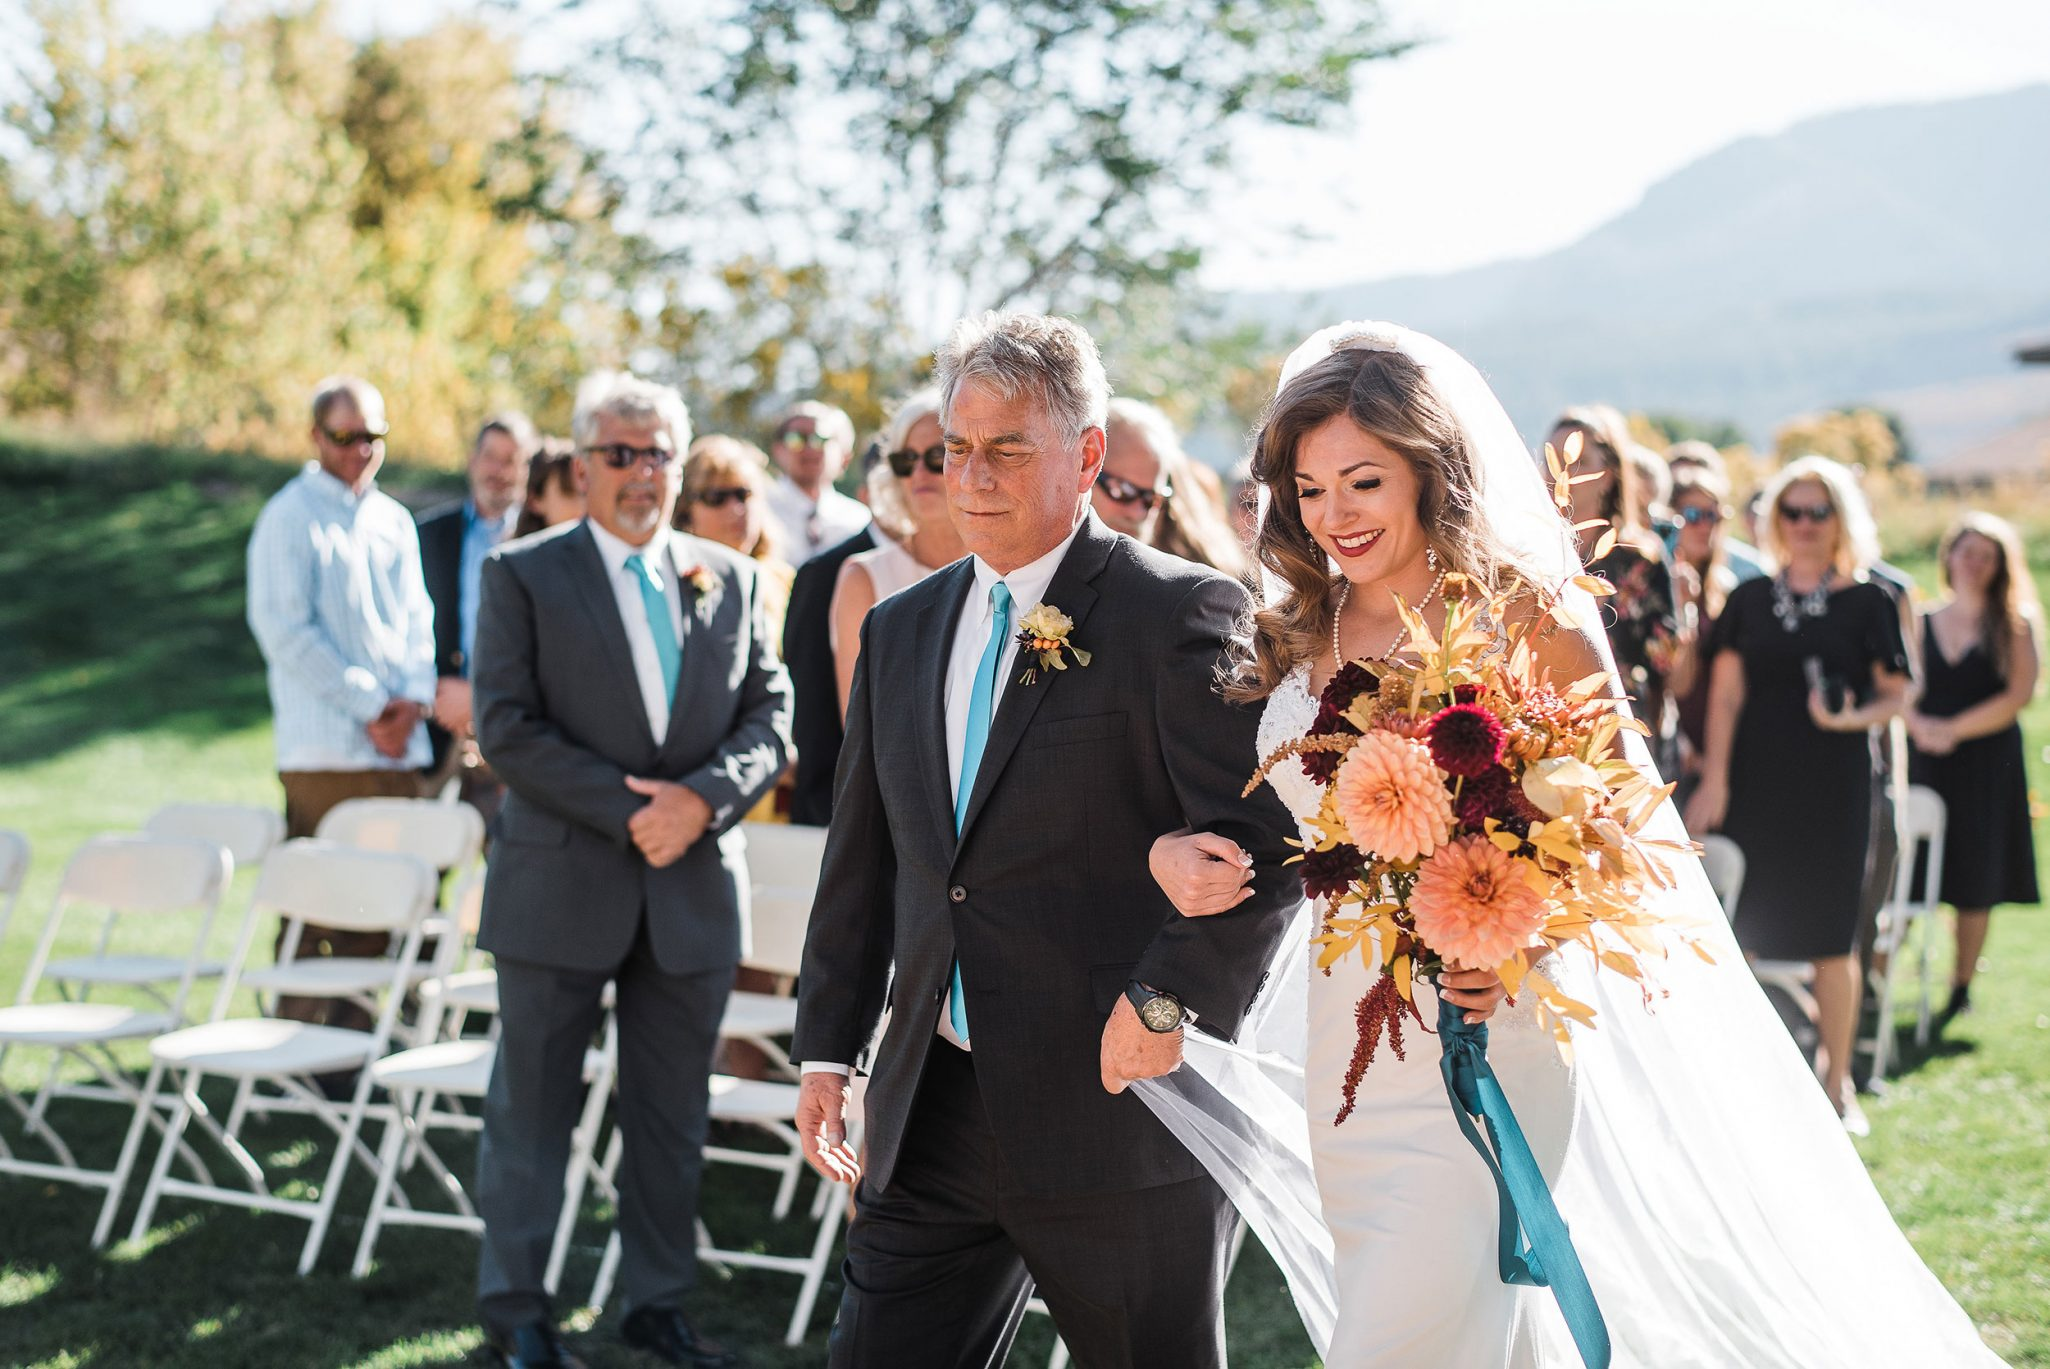 Walking down the aisle with dad at Dalton Ranch Golf Club, Durango Colorado